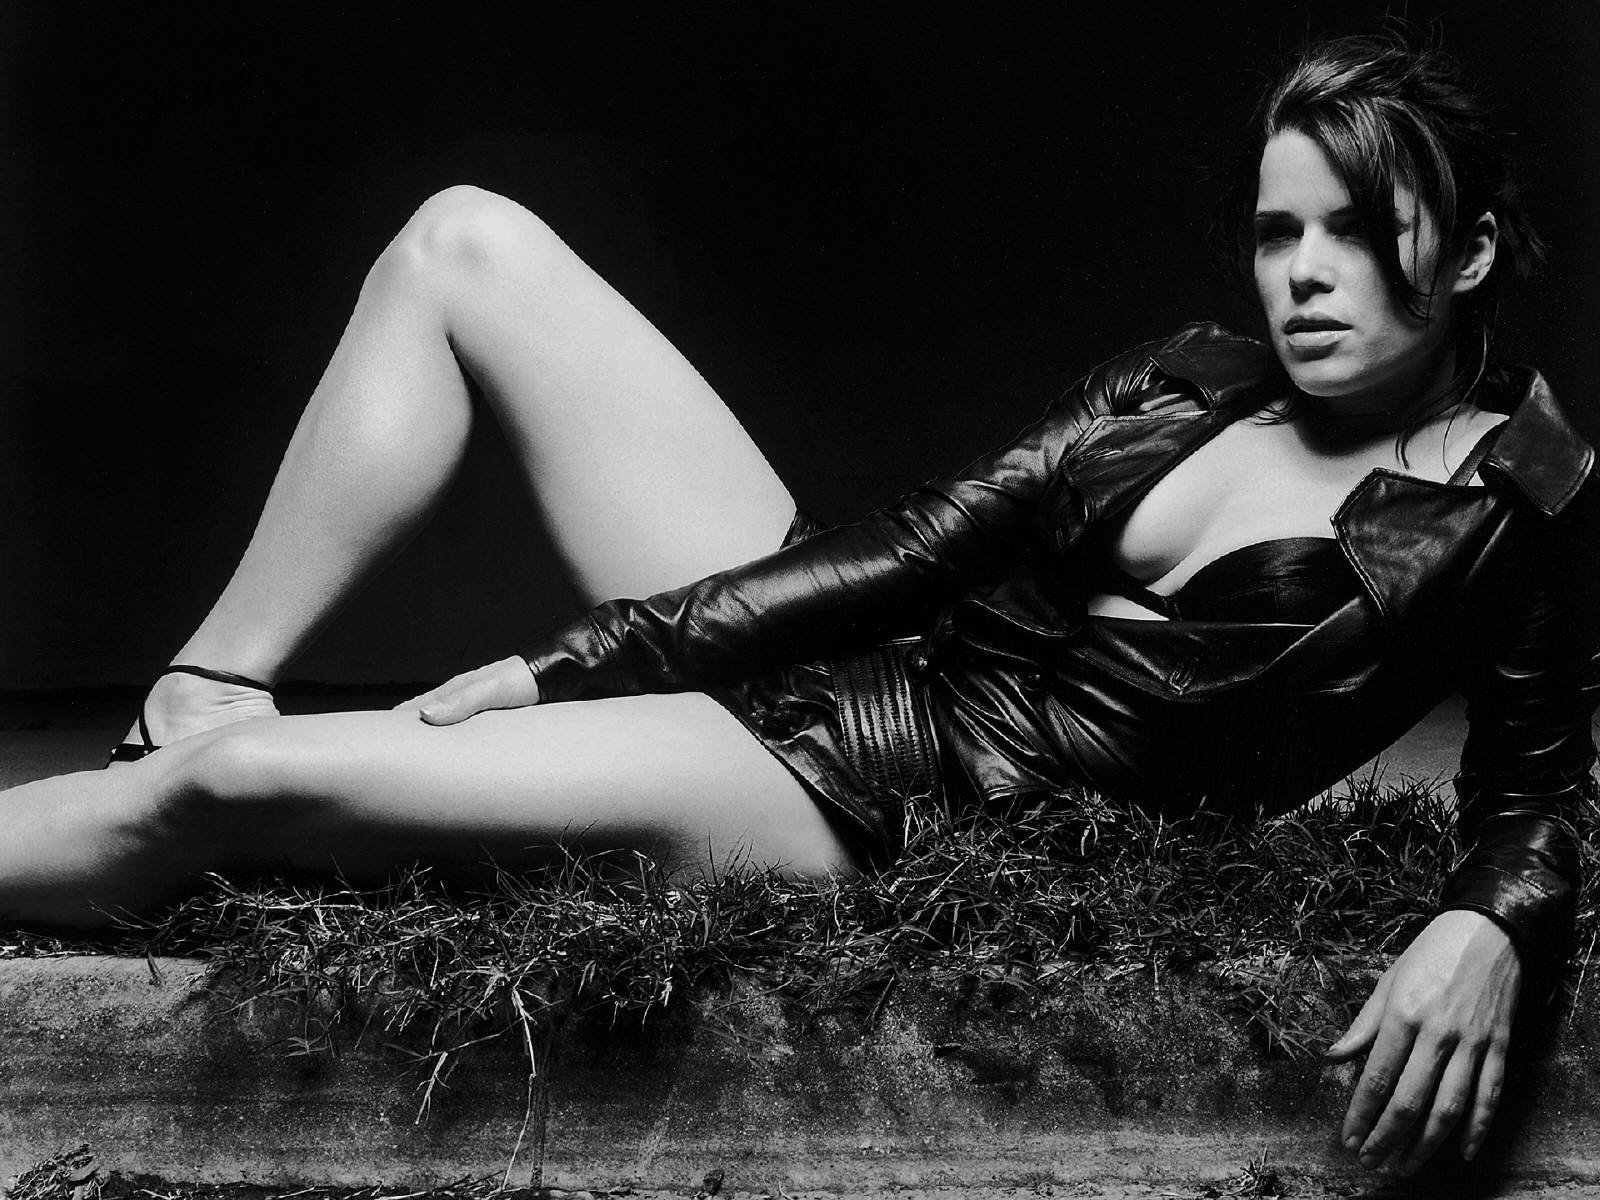 Wallpaper di Neve Campbell, sexy e grintosa in b/n